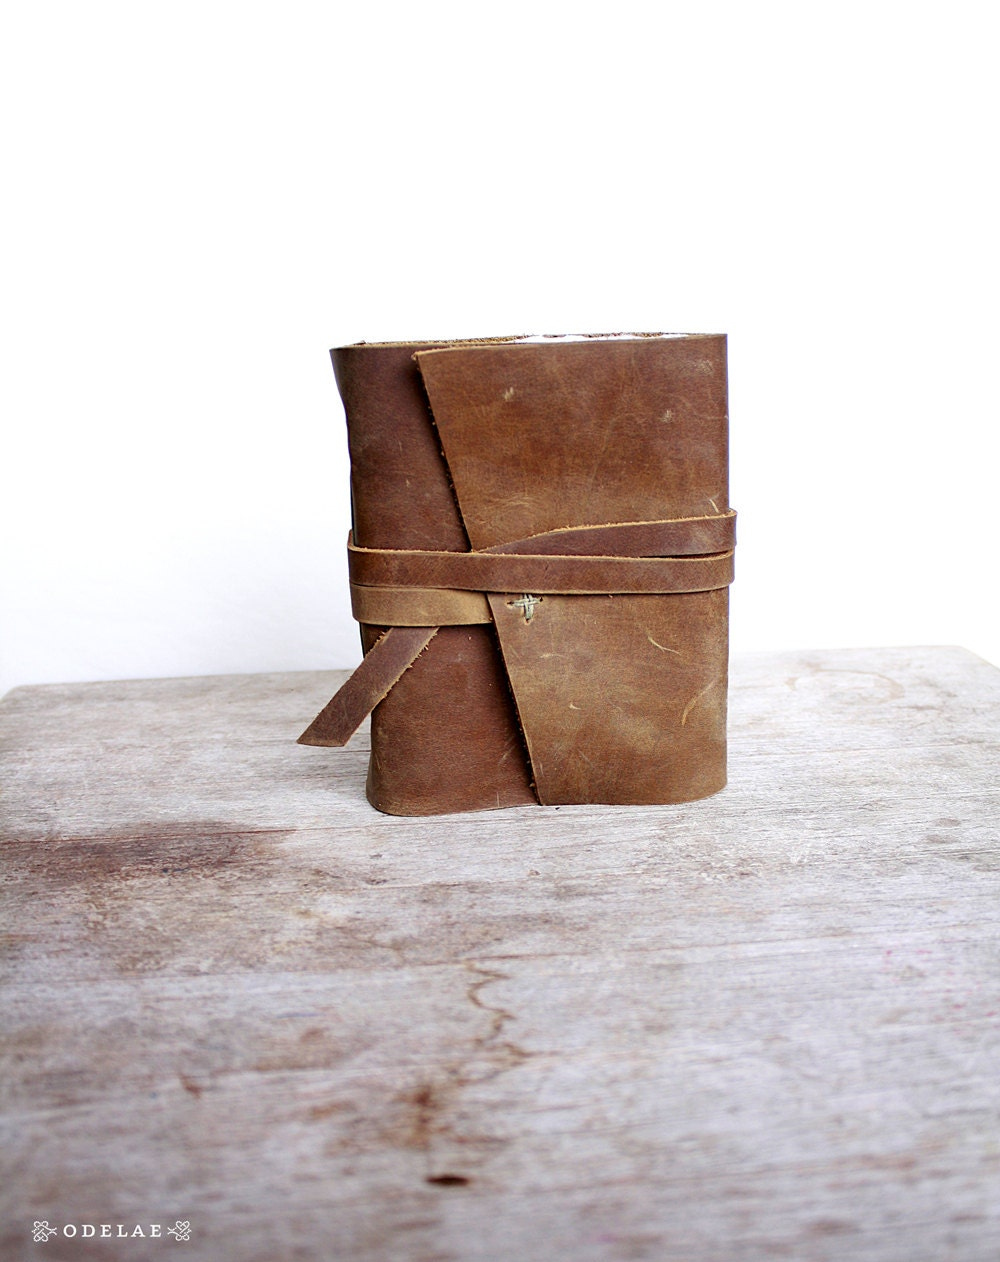 Aerie. Leather Journal - Natural - Handstitched - Writing - Rustic - odelae